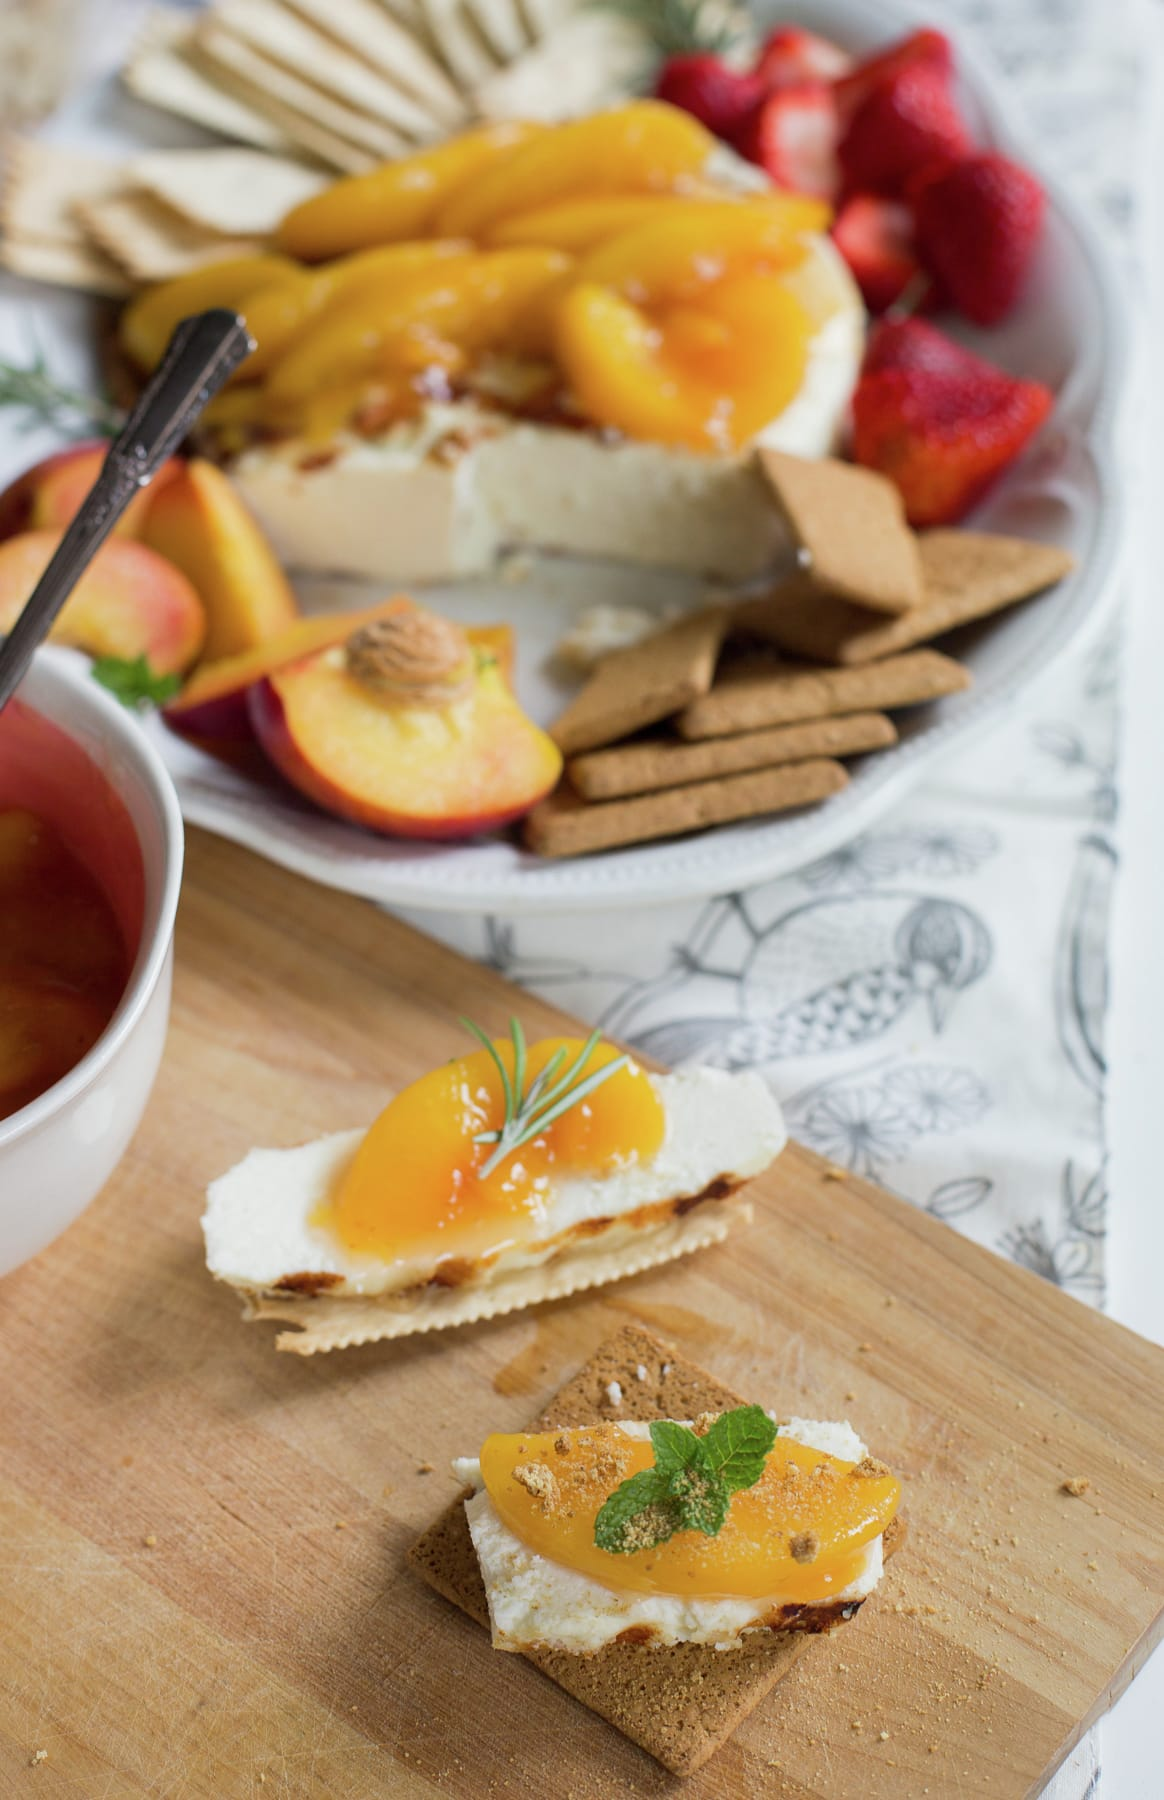 Grilled Queso Fresco with Peach Sauce